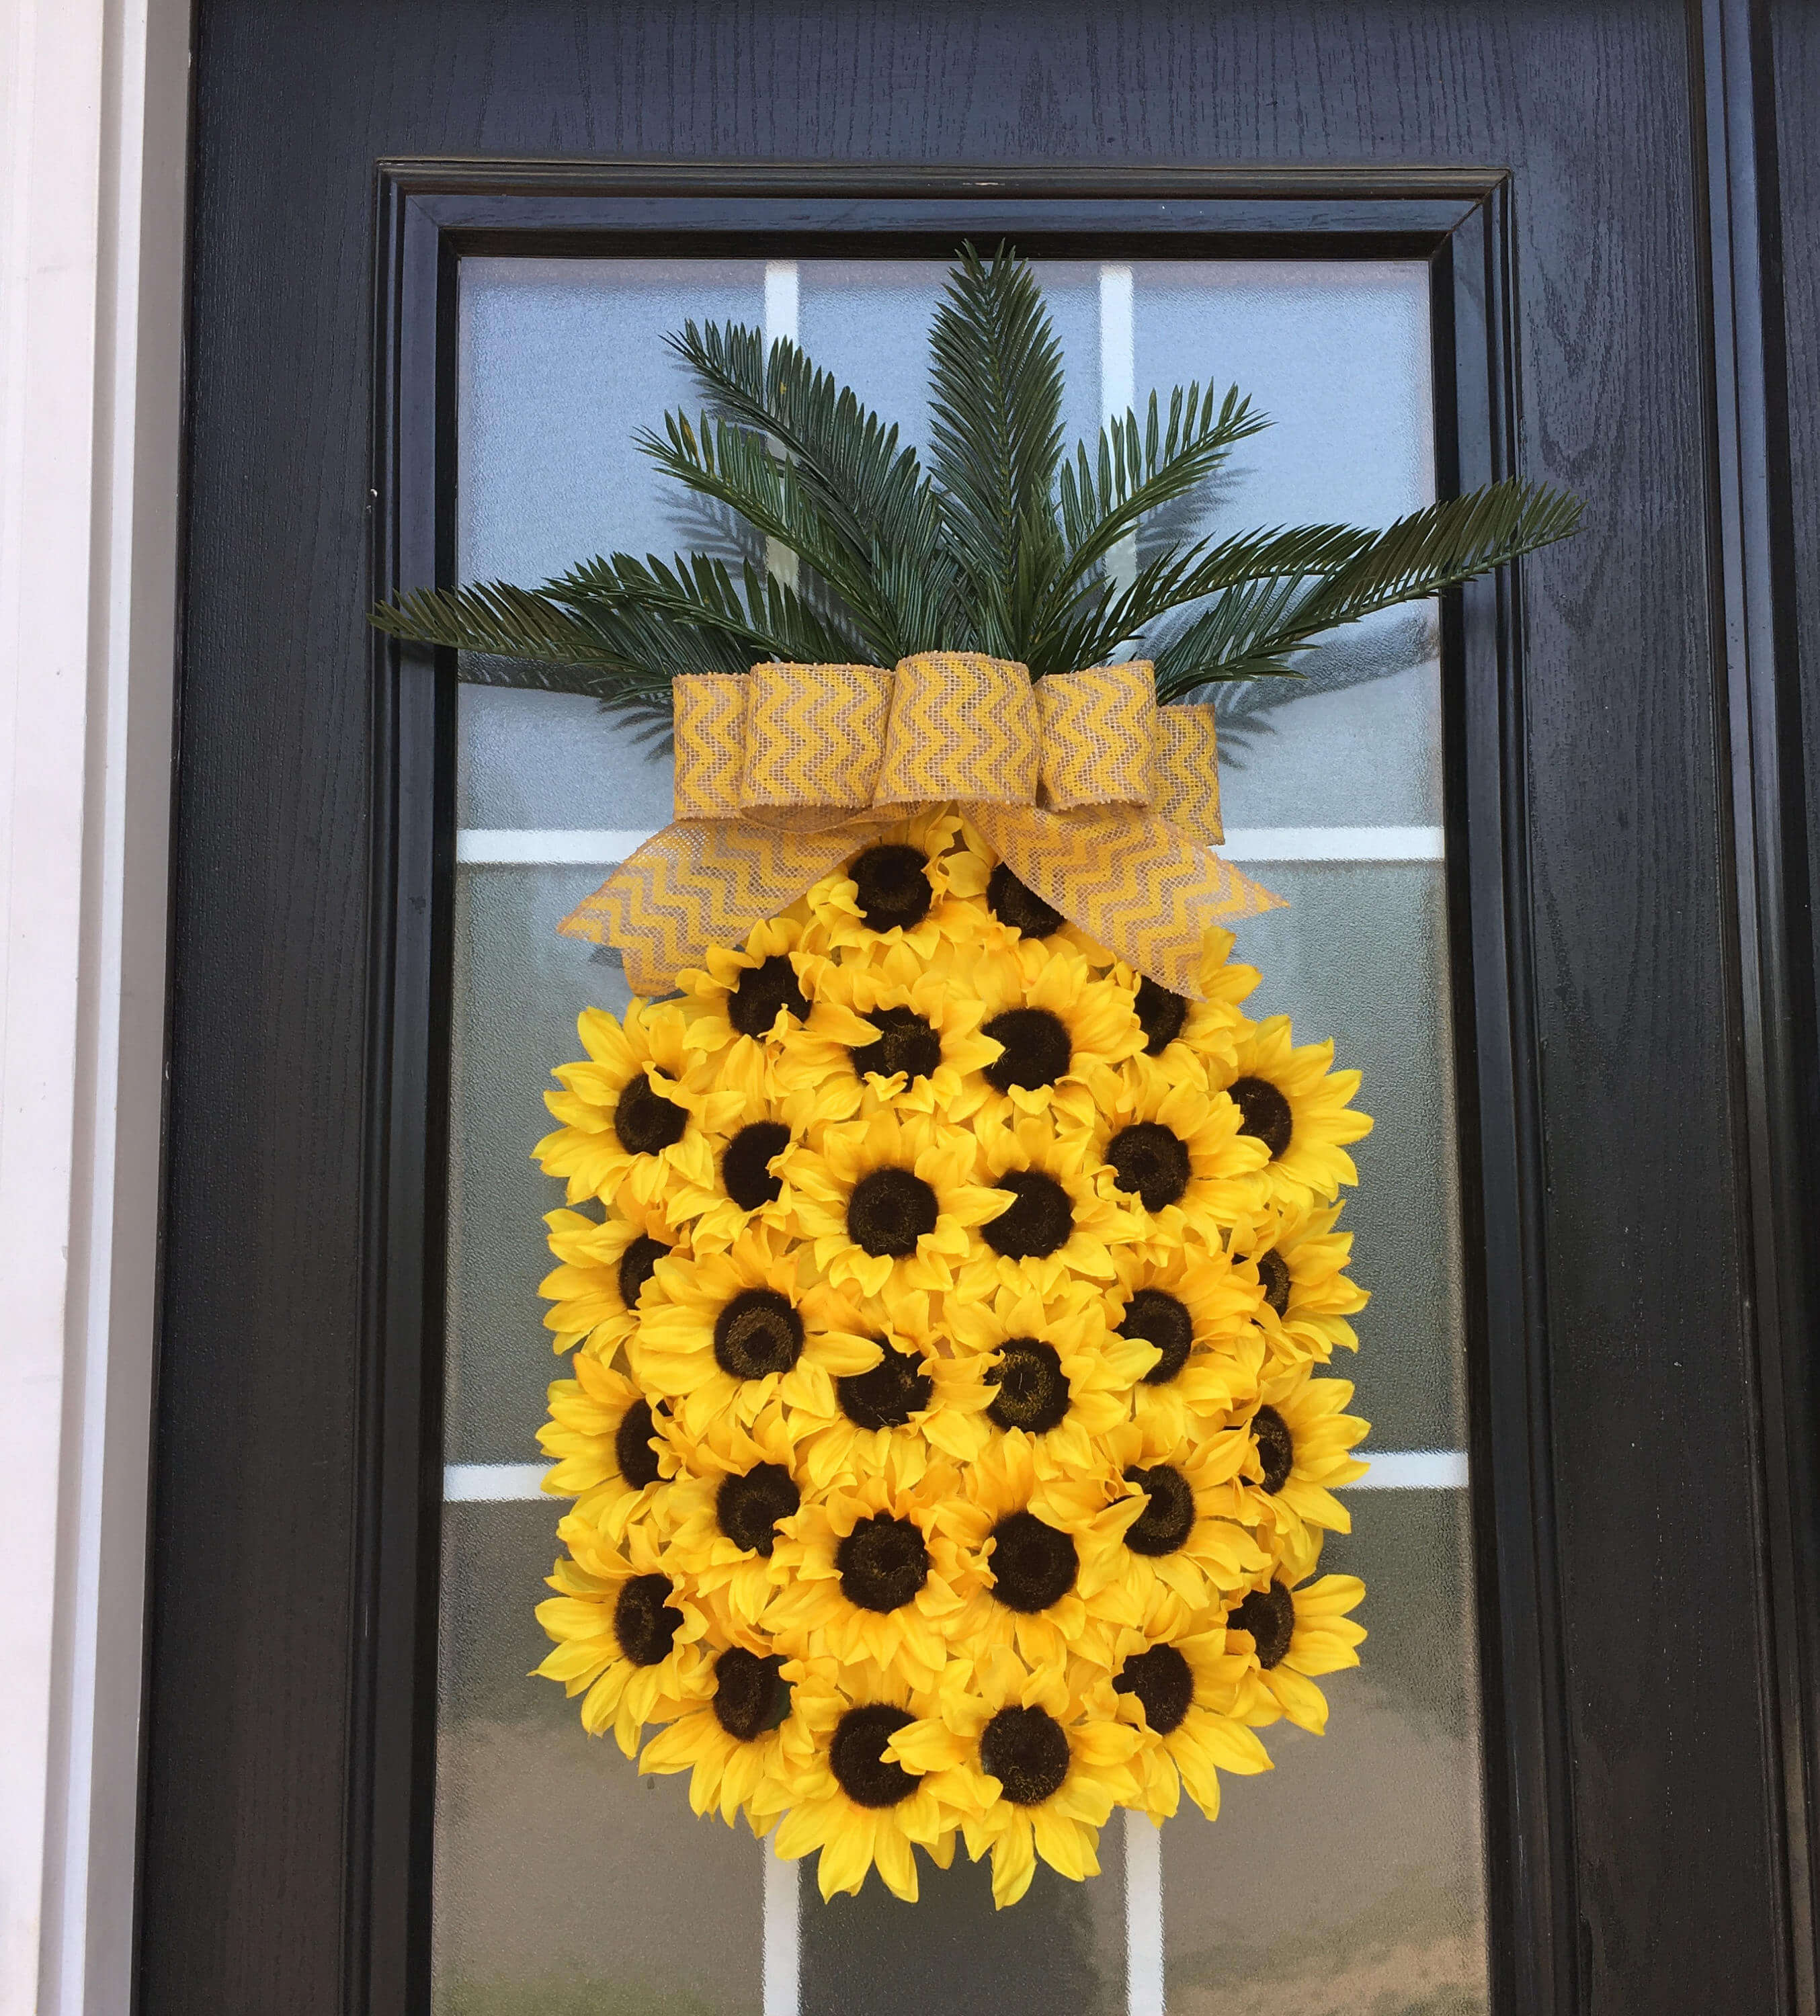 Sunflowers Make This Oversized Pineapple